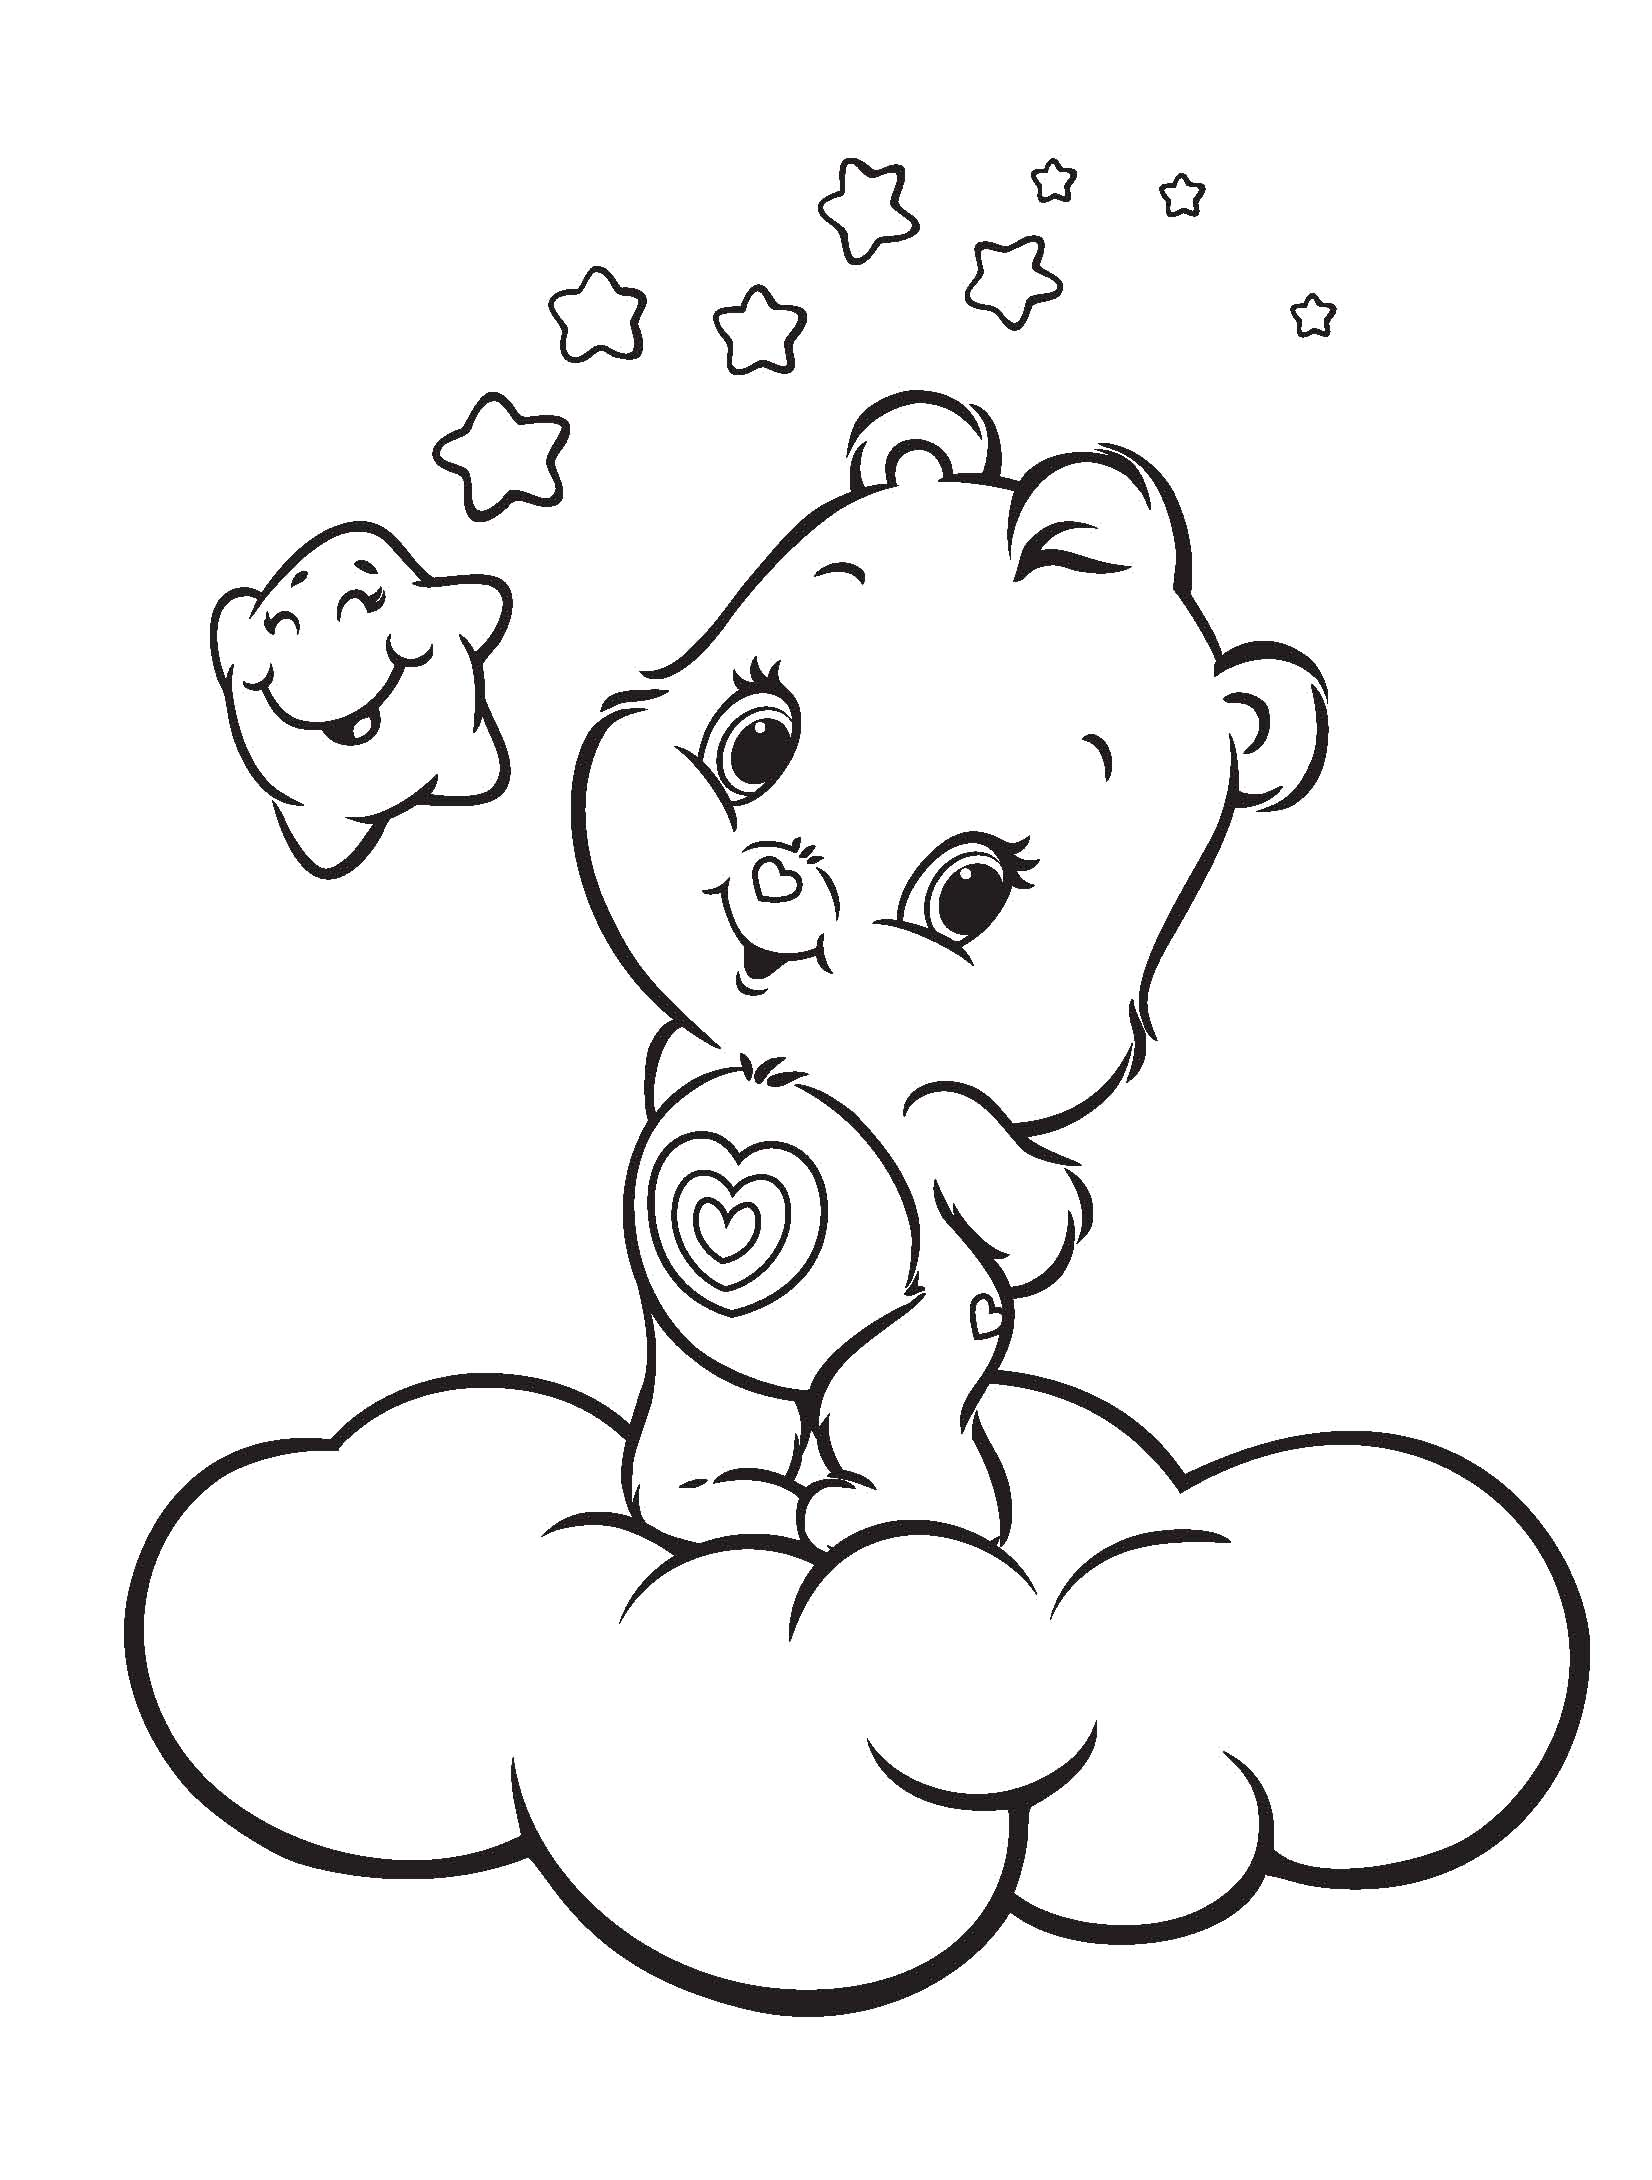 coloring pages for care bares - photo#4